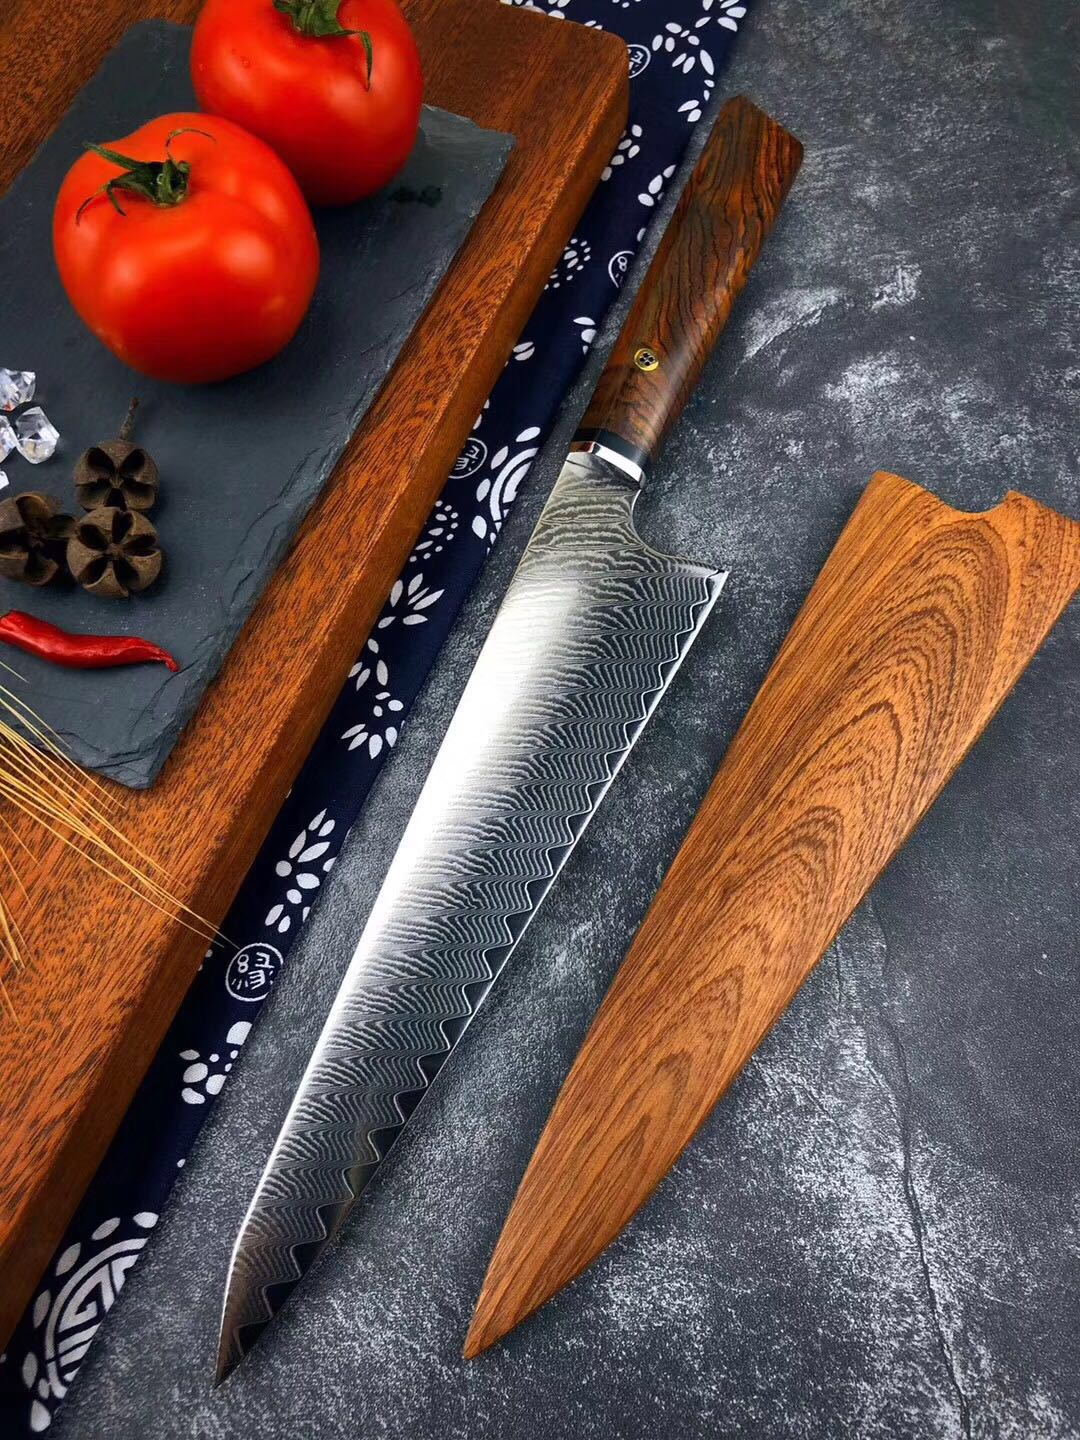 Utility Knife 67 layers VG10 Damascus Stainless Steel Japan Chef Knife Kitchen Cook Knives Best Quality Ebony handle